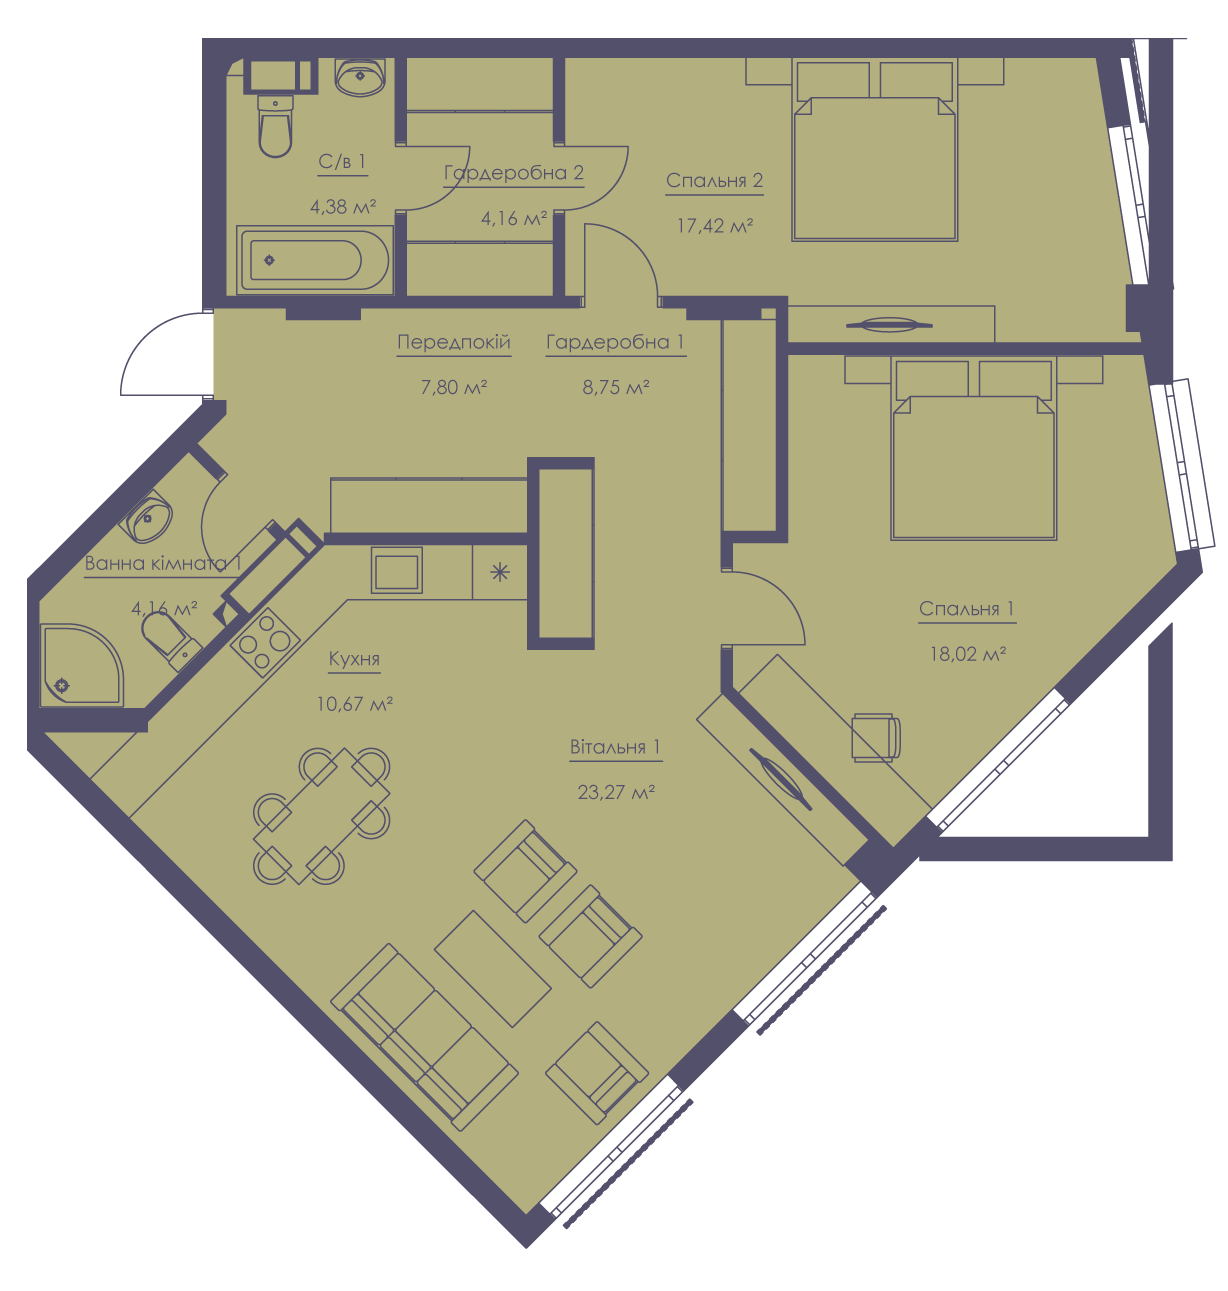 Apartment layout KV_68_3a_1_1_12-1